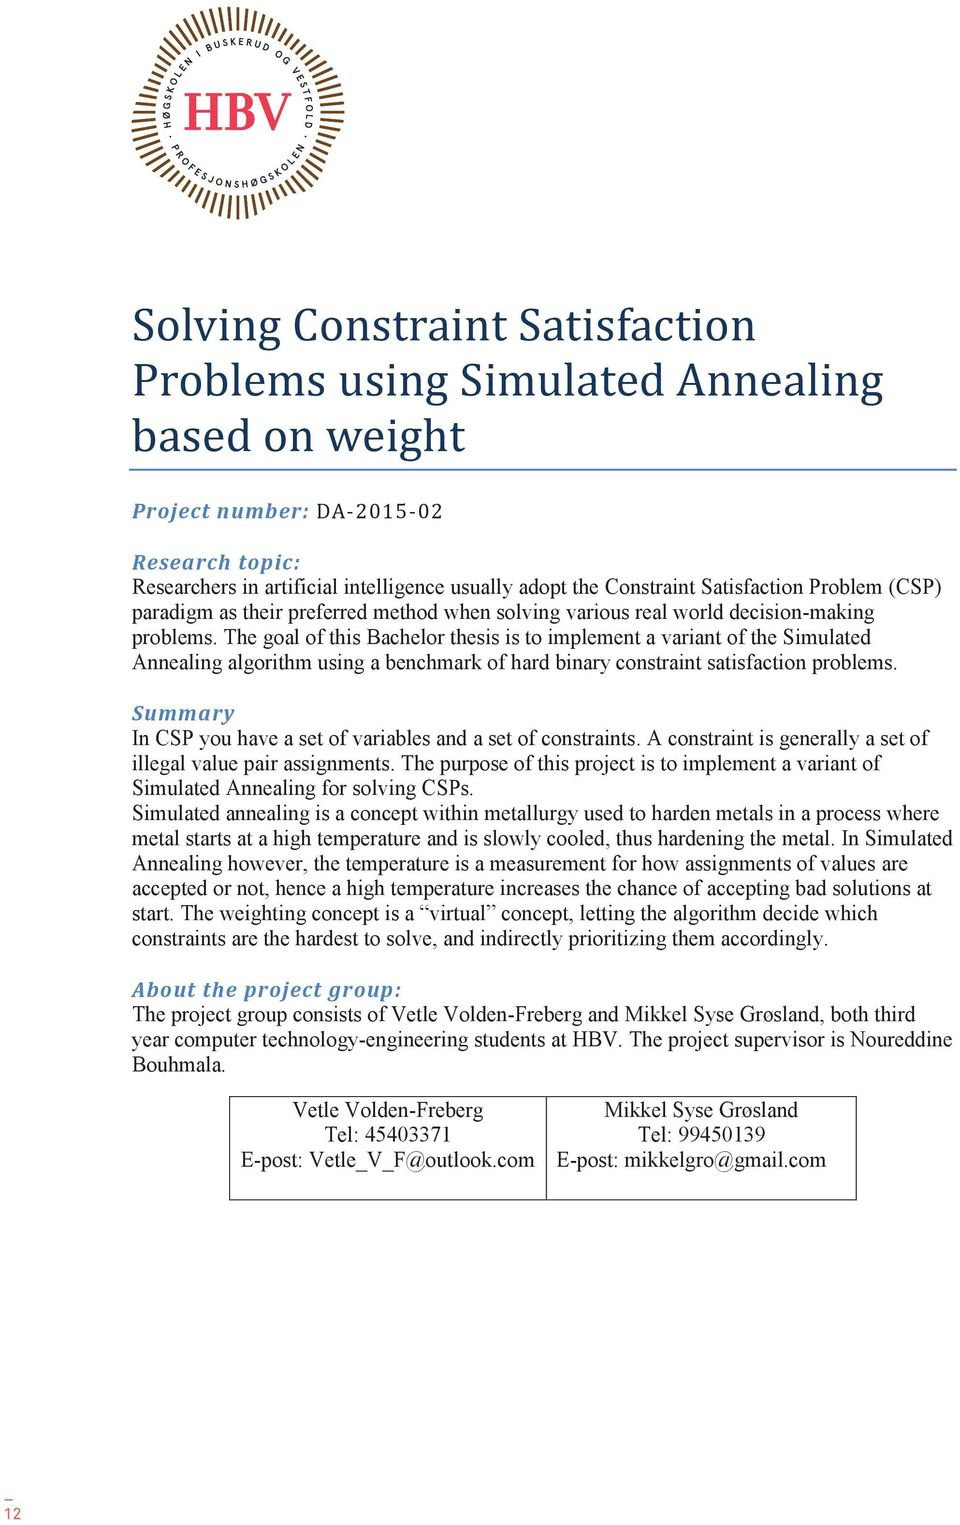 The goal of this Bachelor thesis is to implement a variant of the Simulated Annealing algorithm using a benchmark of hard binary constraint satisfaction problems.